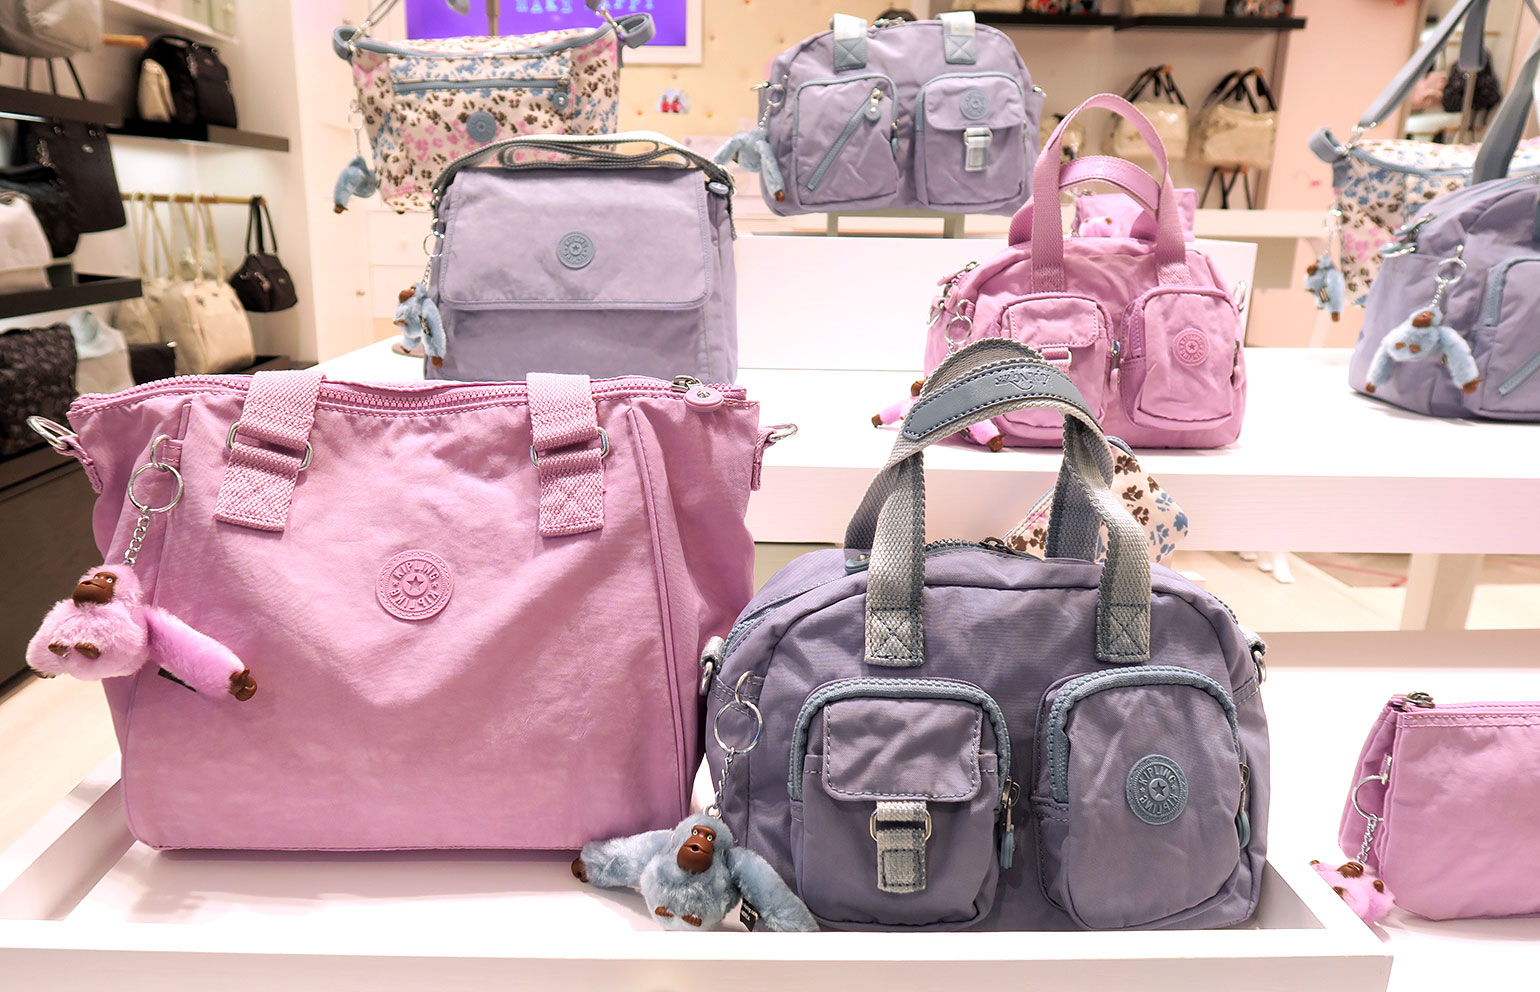 3 Kipling Philippines 30 years - Uptown Mall - Dream Garden Collection - Gen-zel.com(c)